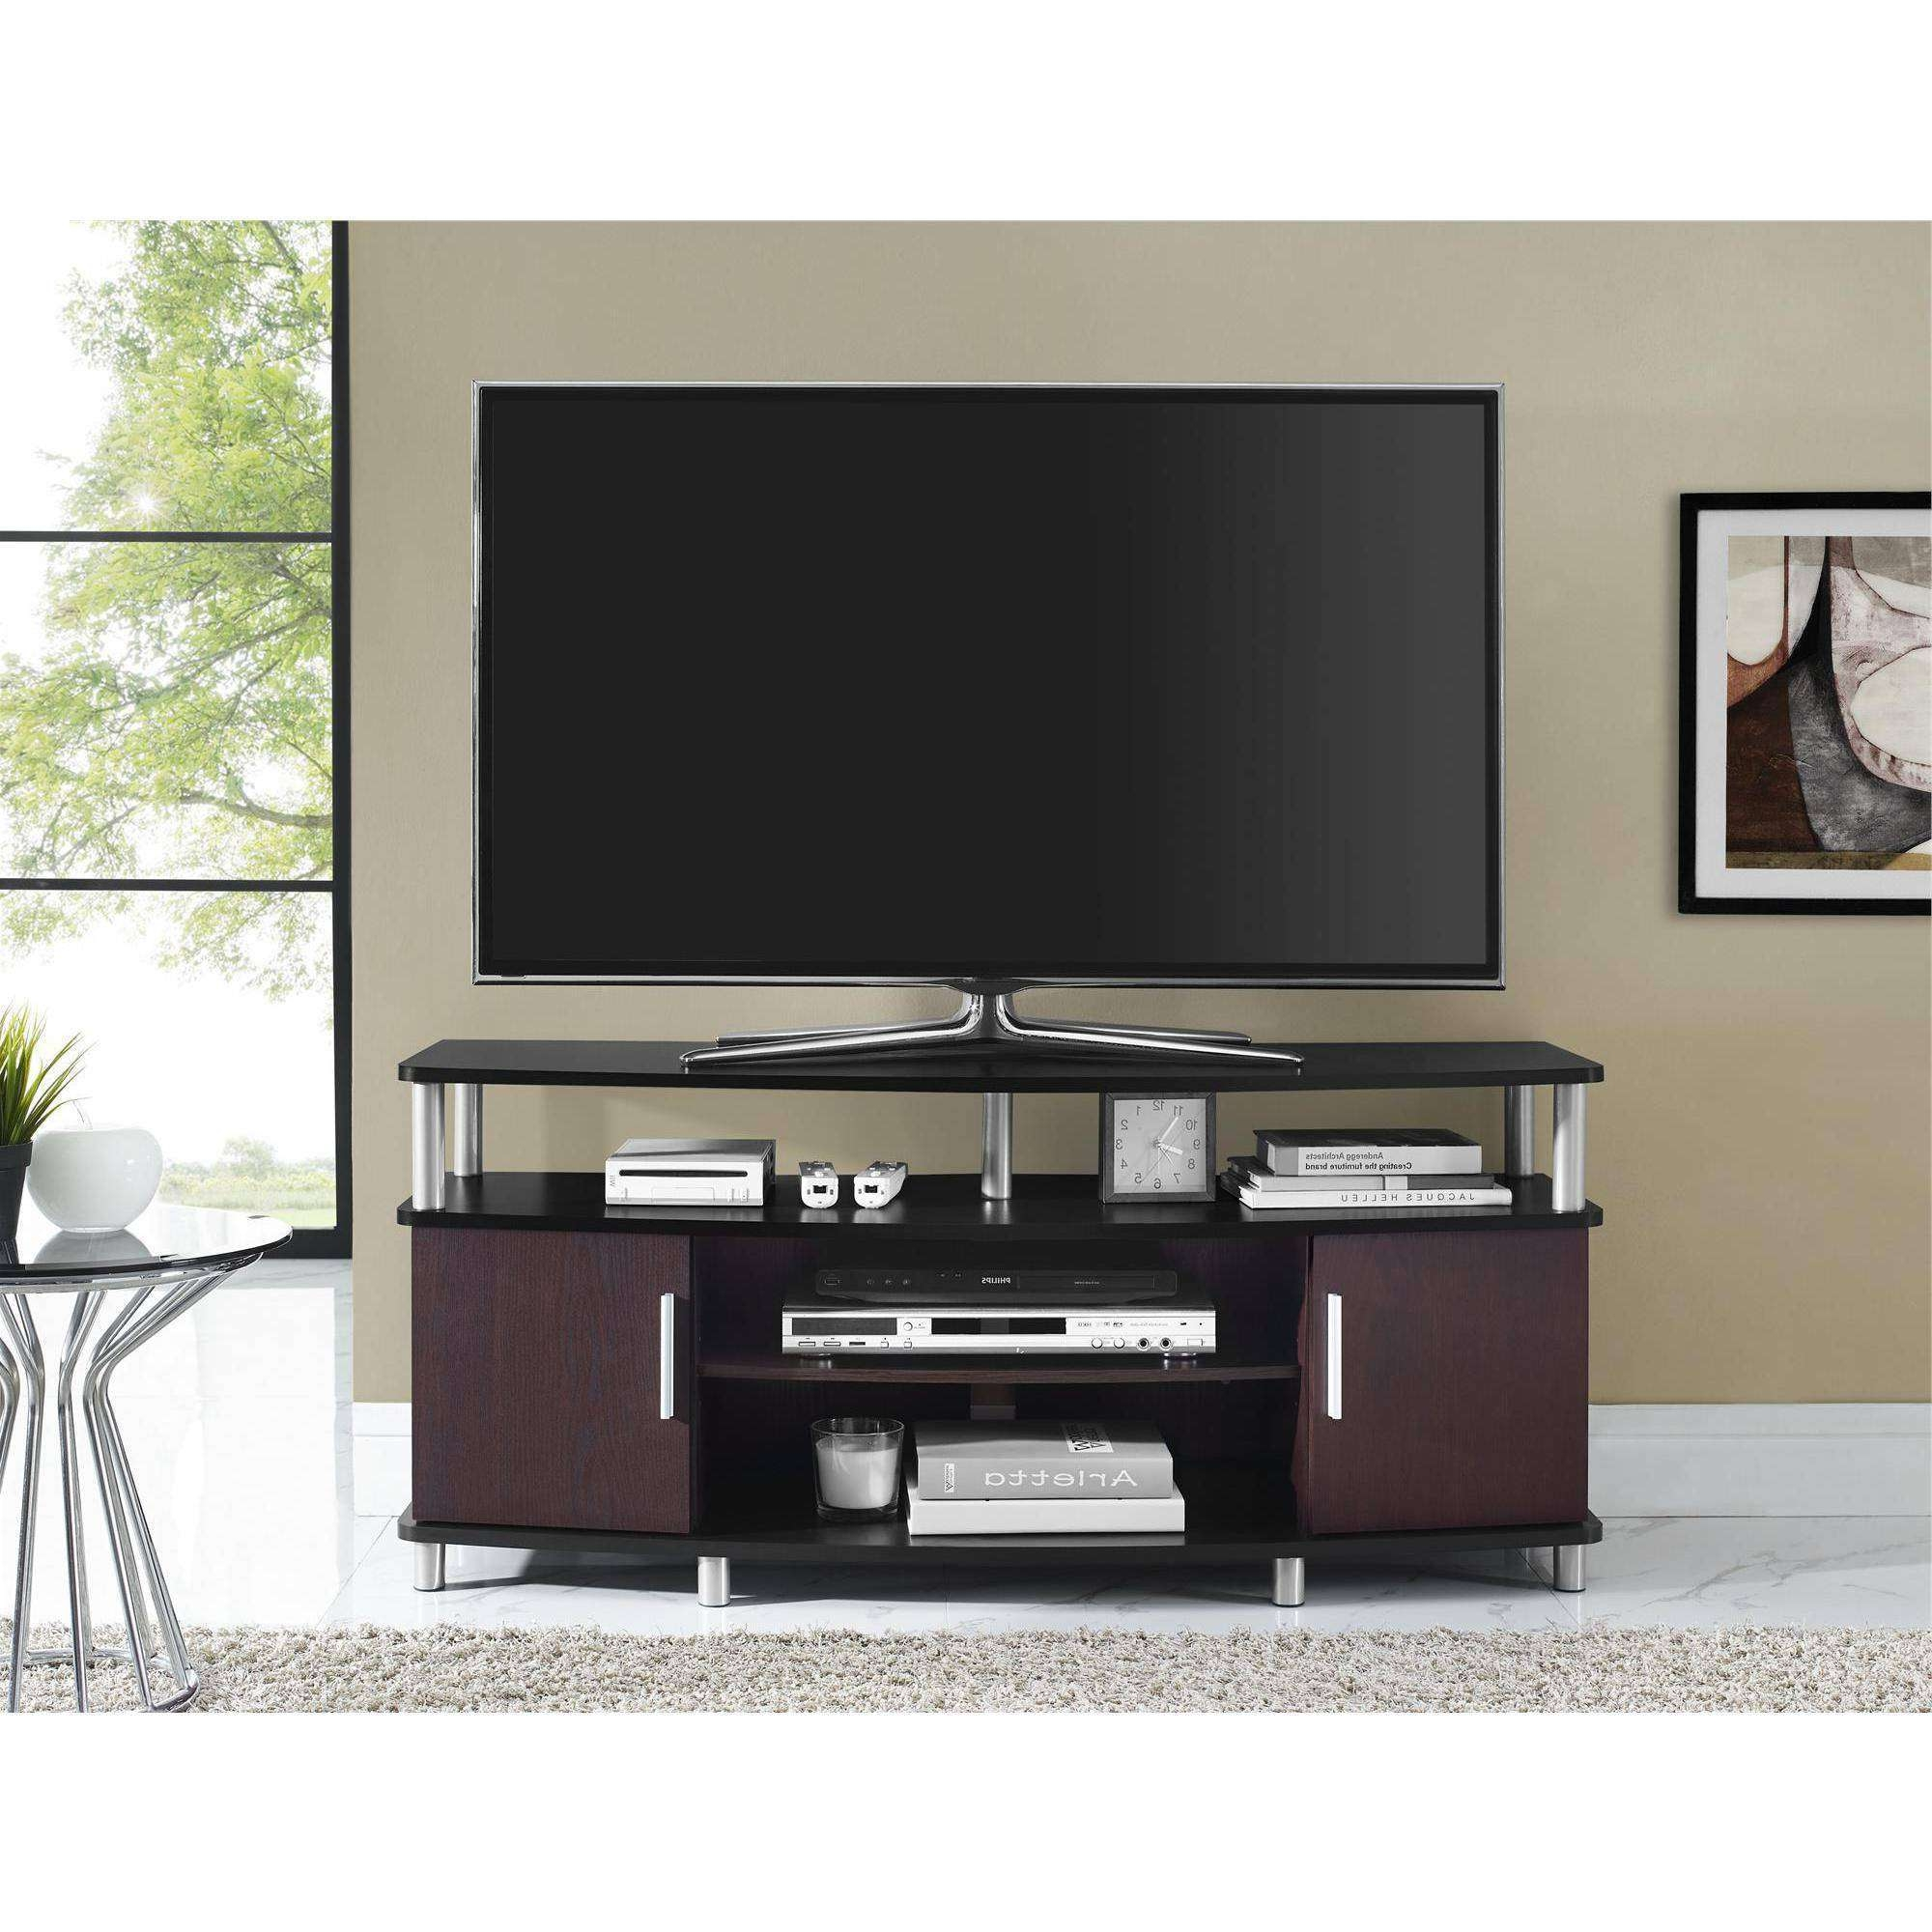 Flat Screen Tv Stands With Mount Furnitures Modern For Inch Throughout Modern Tv Stands With Mount (View 4 of 15)